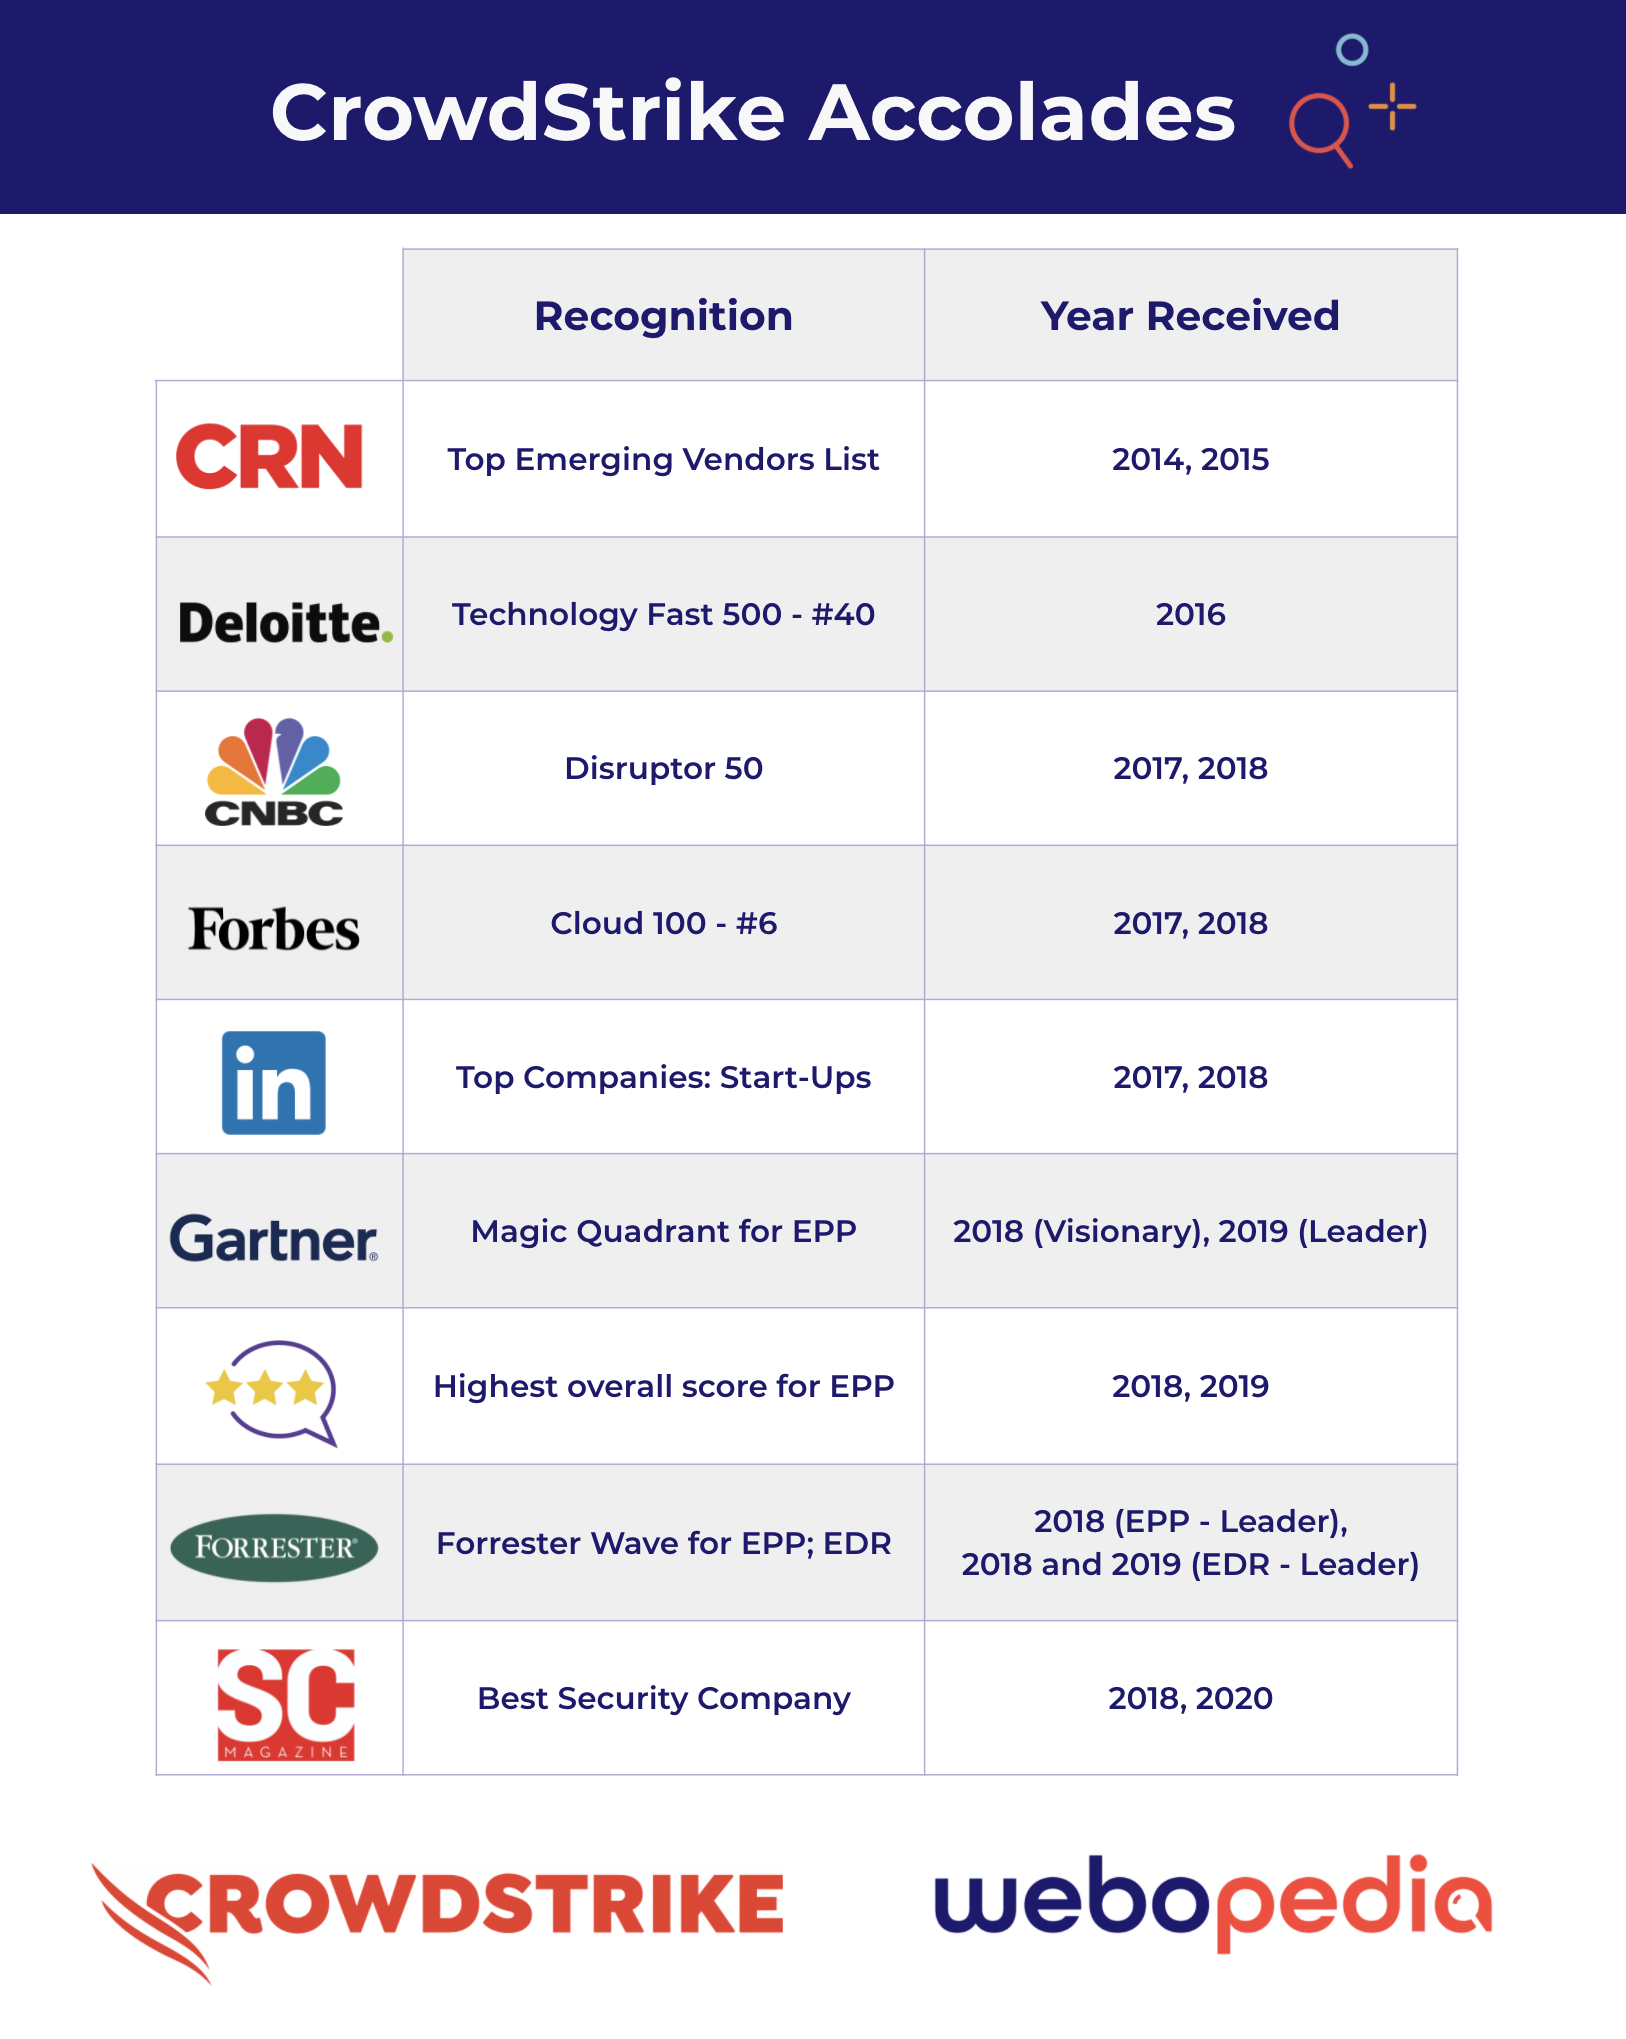 A graphic showing that CrowdStrike's accolades include recognition from CRN Magazine, Deloitte, CNBC, Forbes, LinkedIn, Gartner, Forrester, and SC Magazine. Designed by Sam Ingalls.